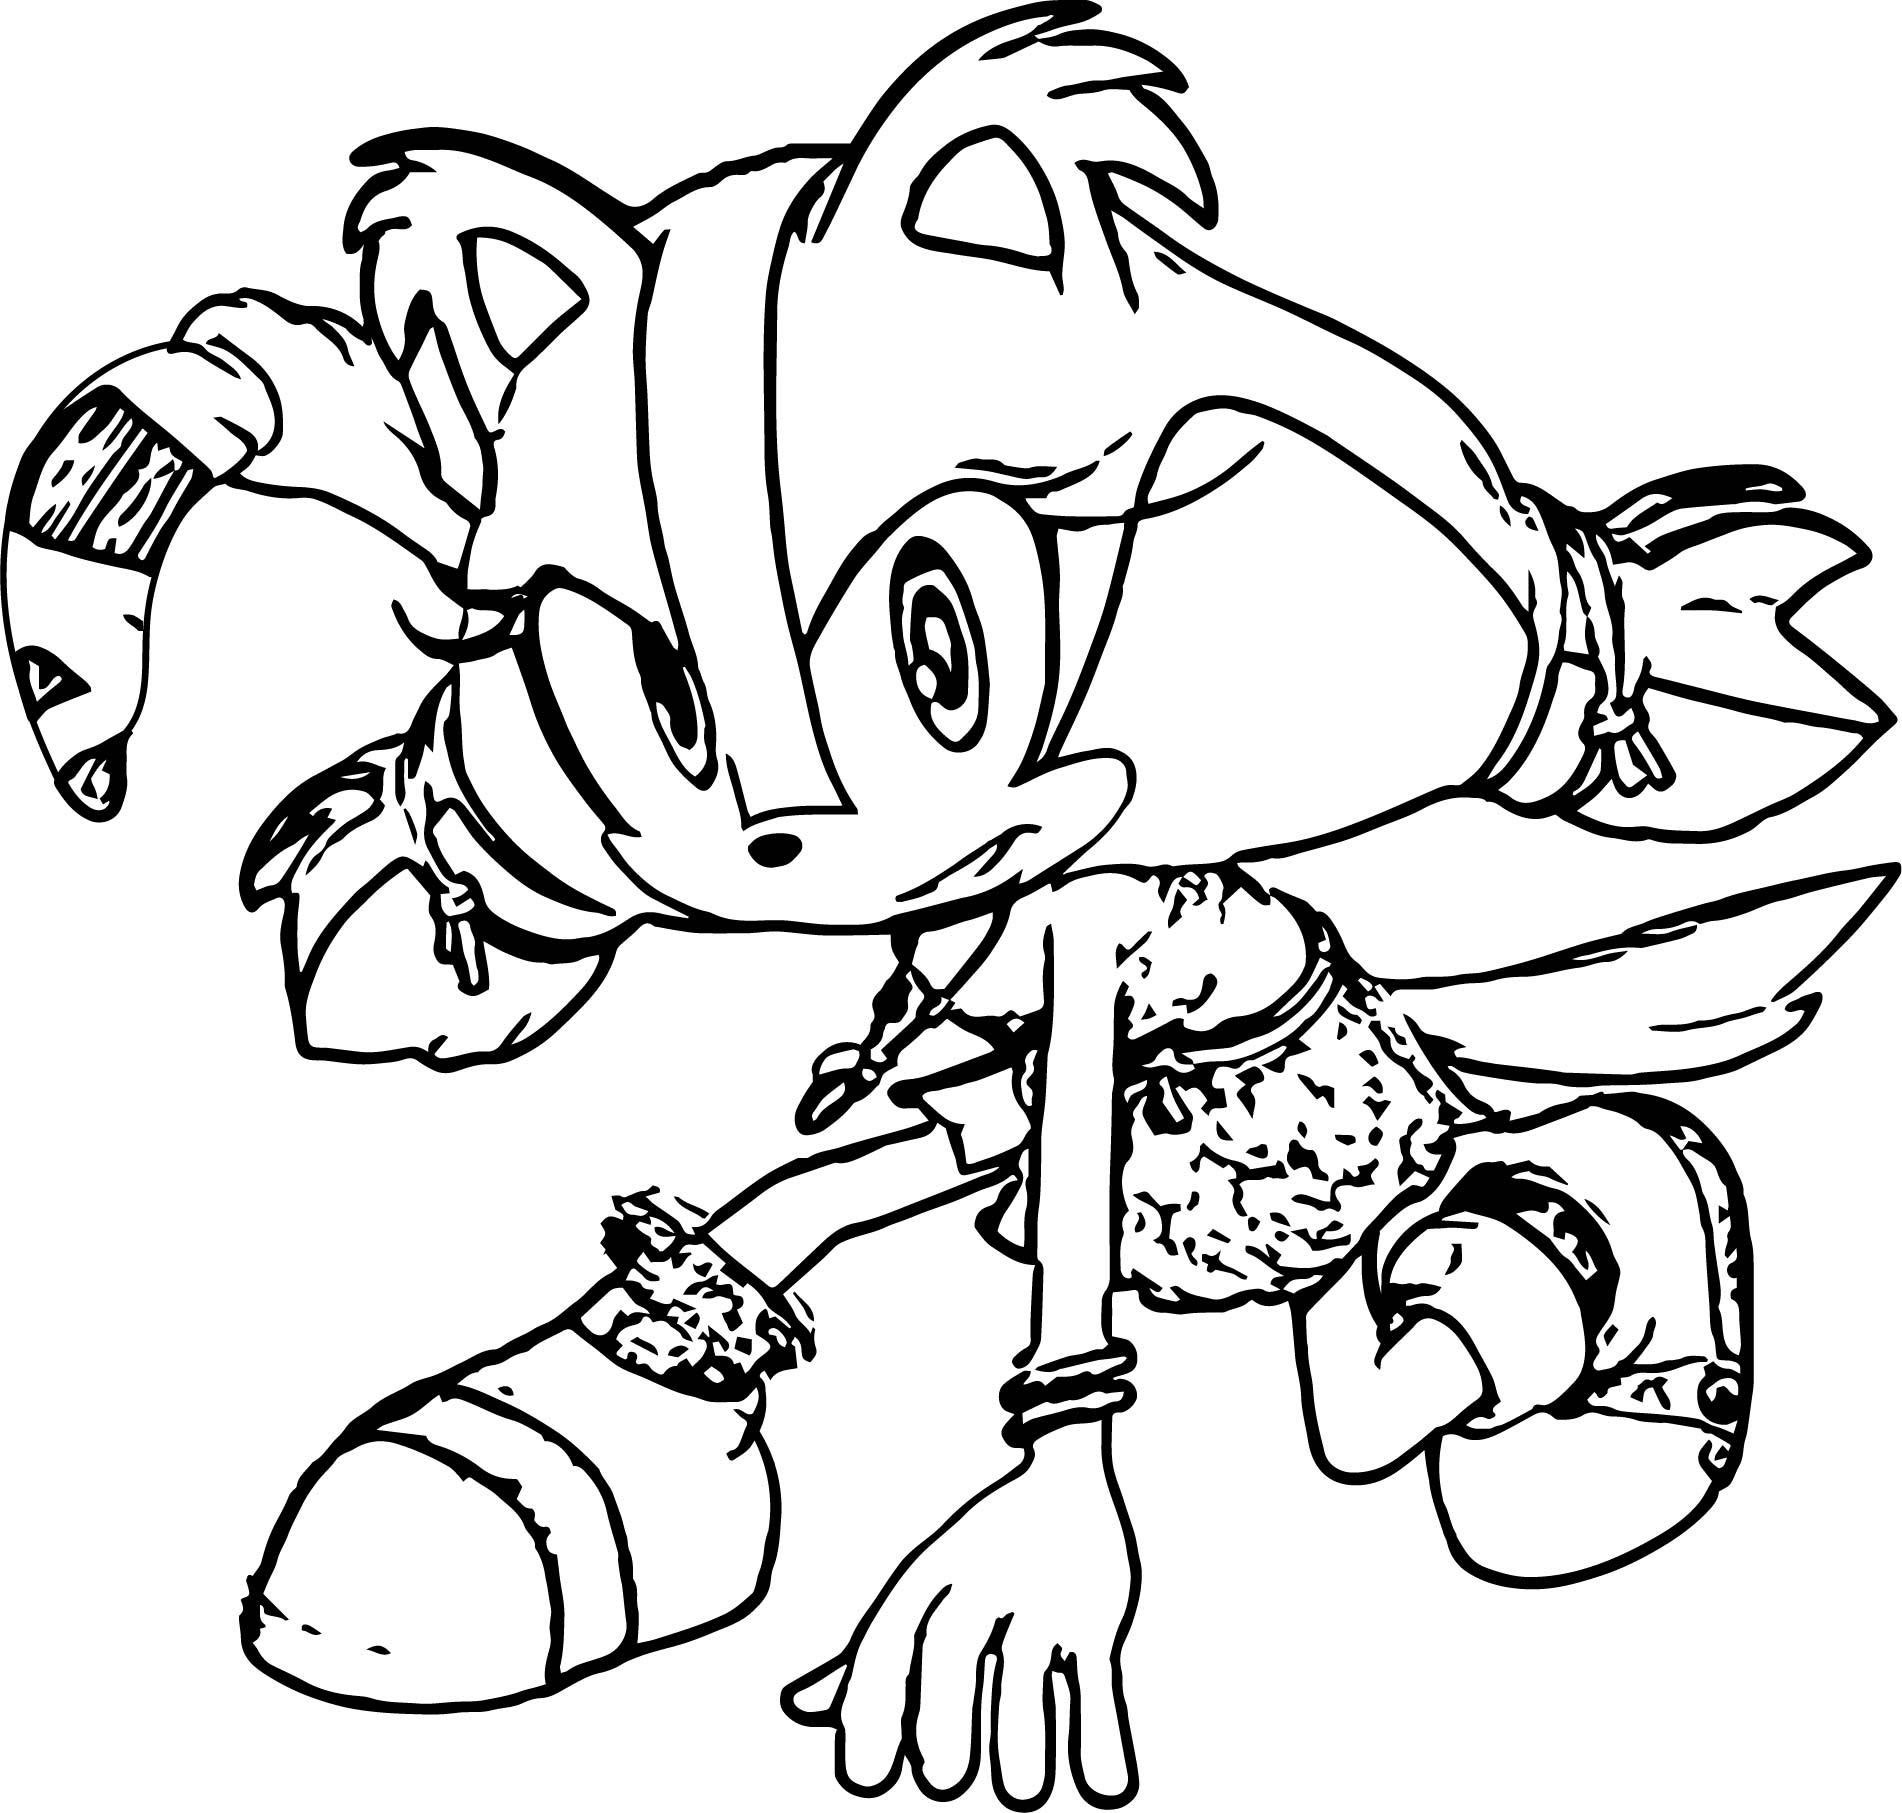 Sonic The Hedgehog Coloring Page WeColoringPage 008 ...